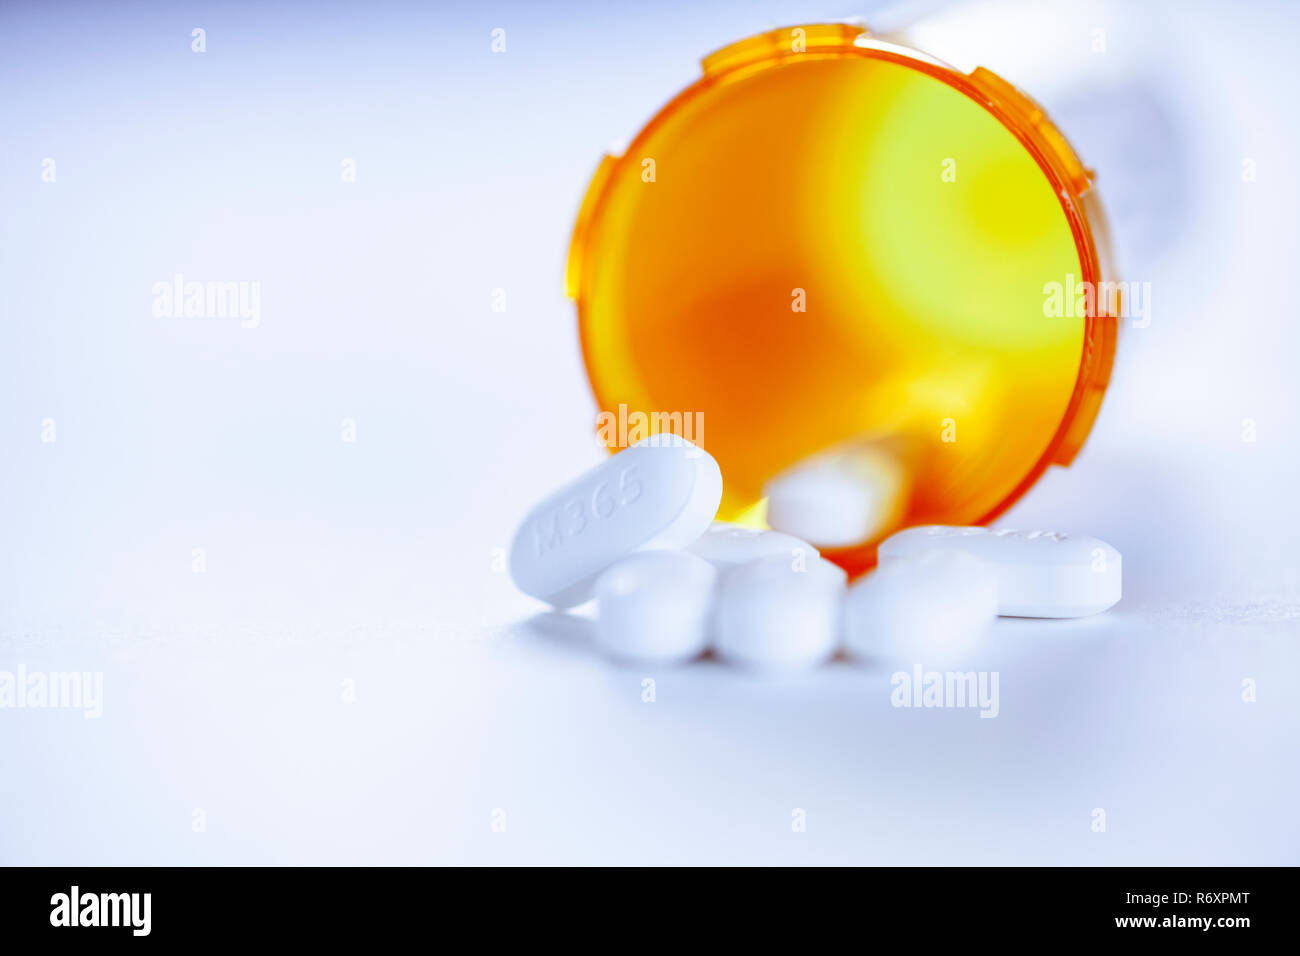 WA17034-00...WASHINGTON - Acetaminophen Hydrocodone pills spilling out of a bottle. - Stock Image